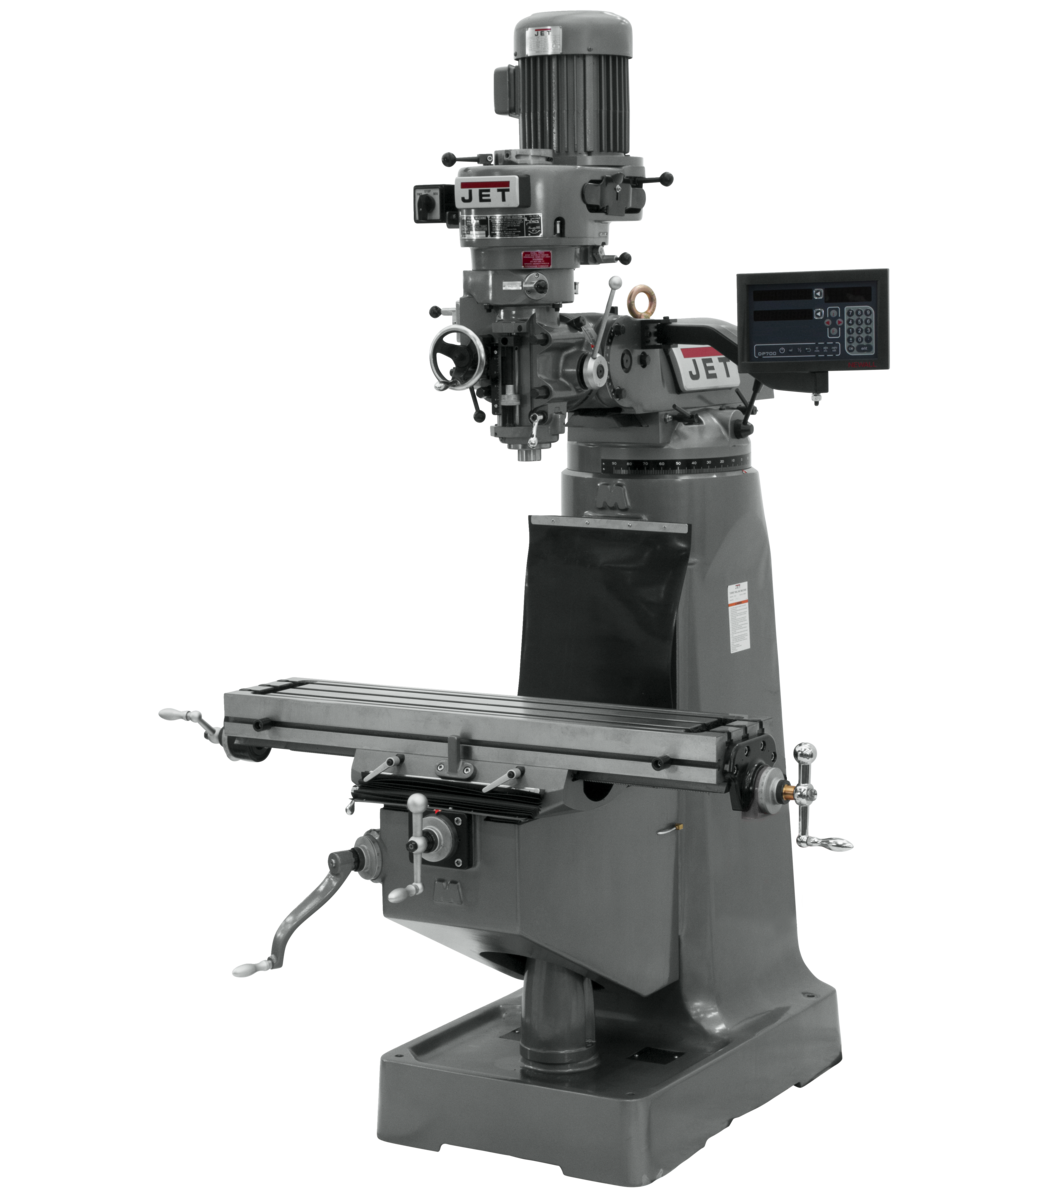 JTM-1 Mill With 3-Axis Newall DP700 DRO (Quill)